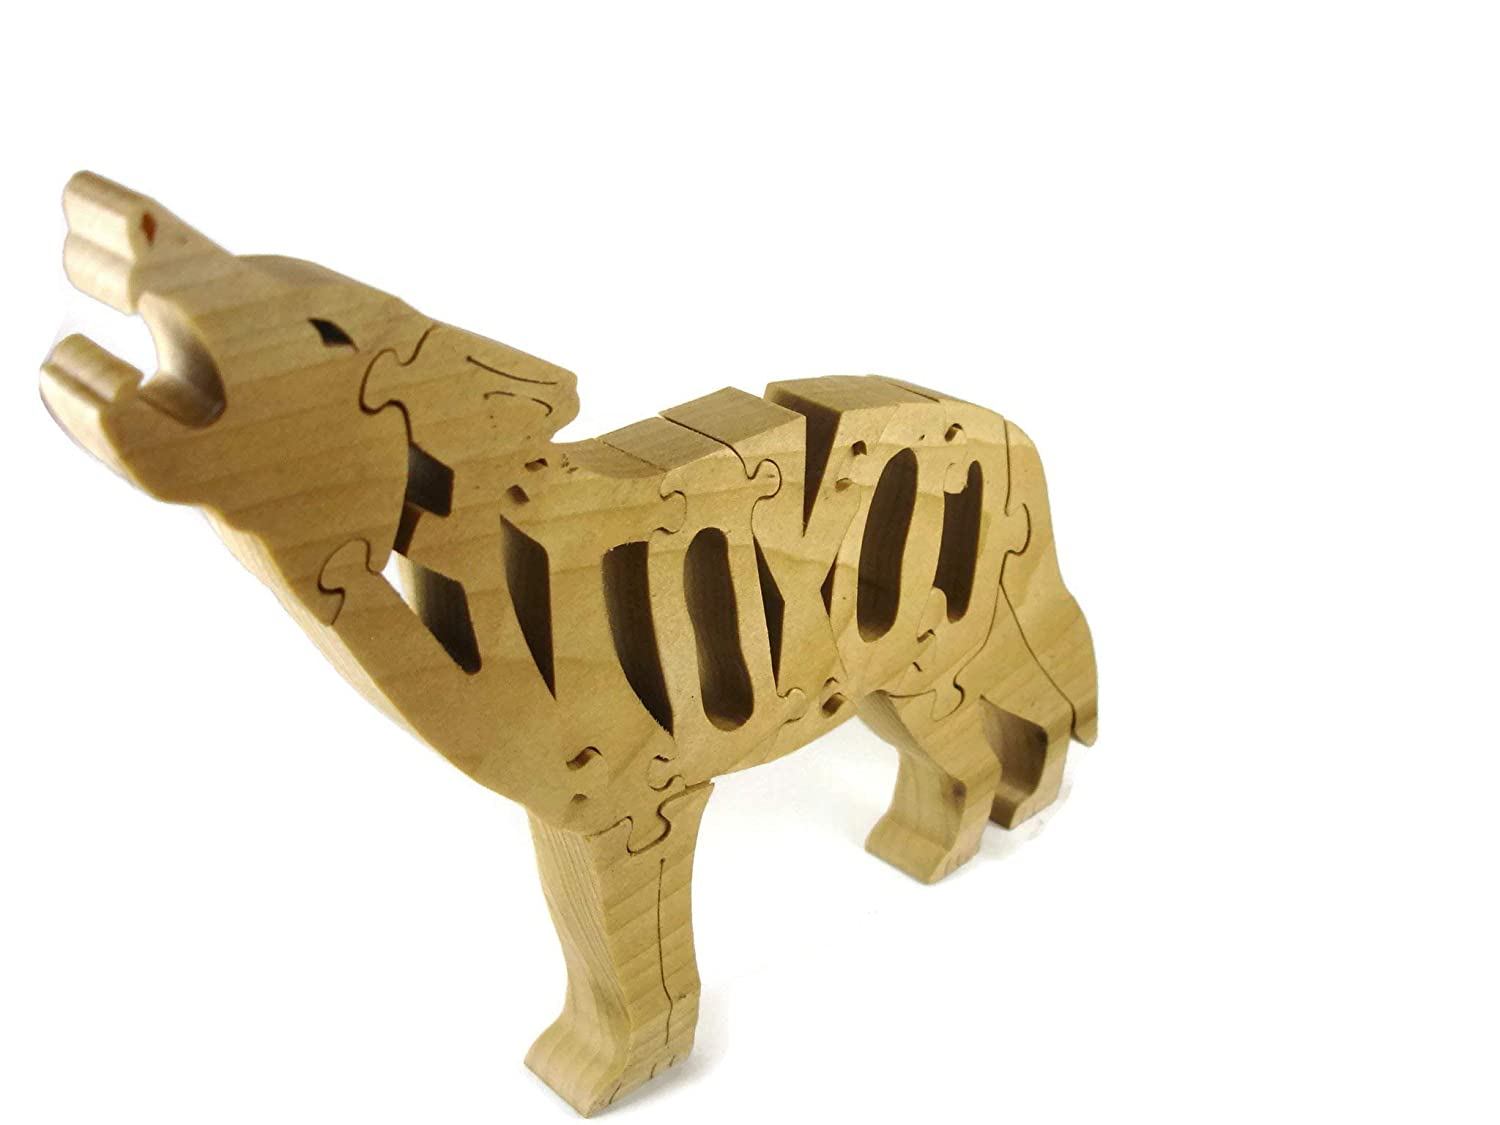 Coyote Free Standing Wood Jigsaw Puzzle Handcrafted From Poplar Hardwood